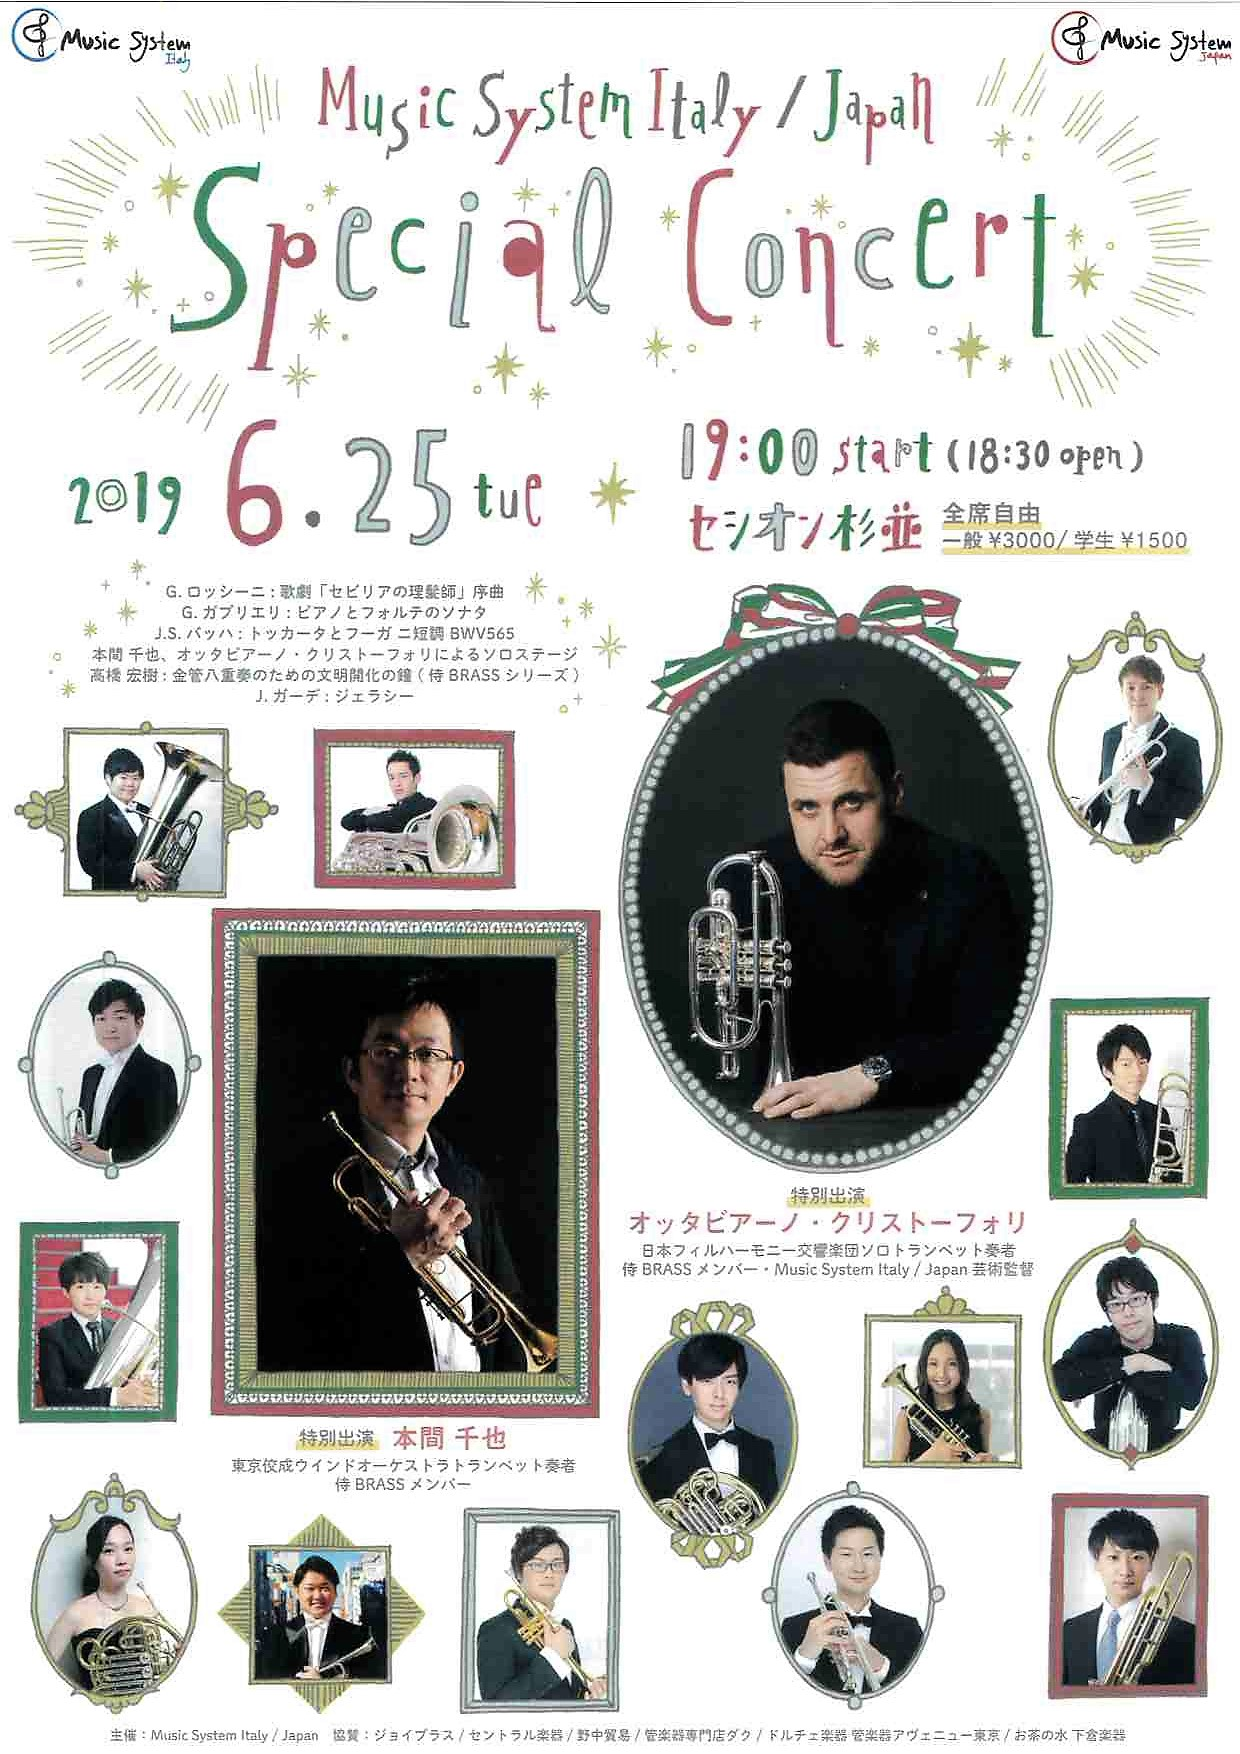 Music System Italy/Japan Special Concert